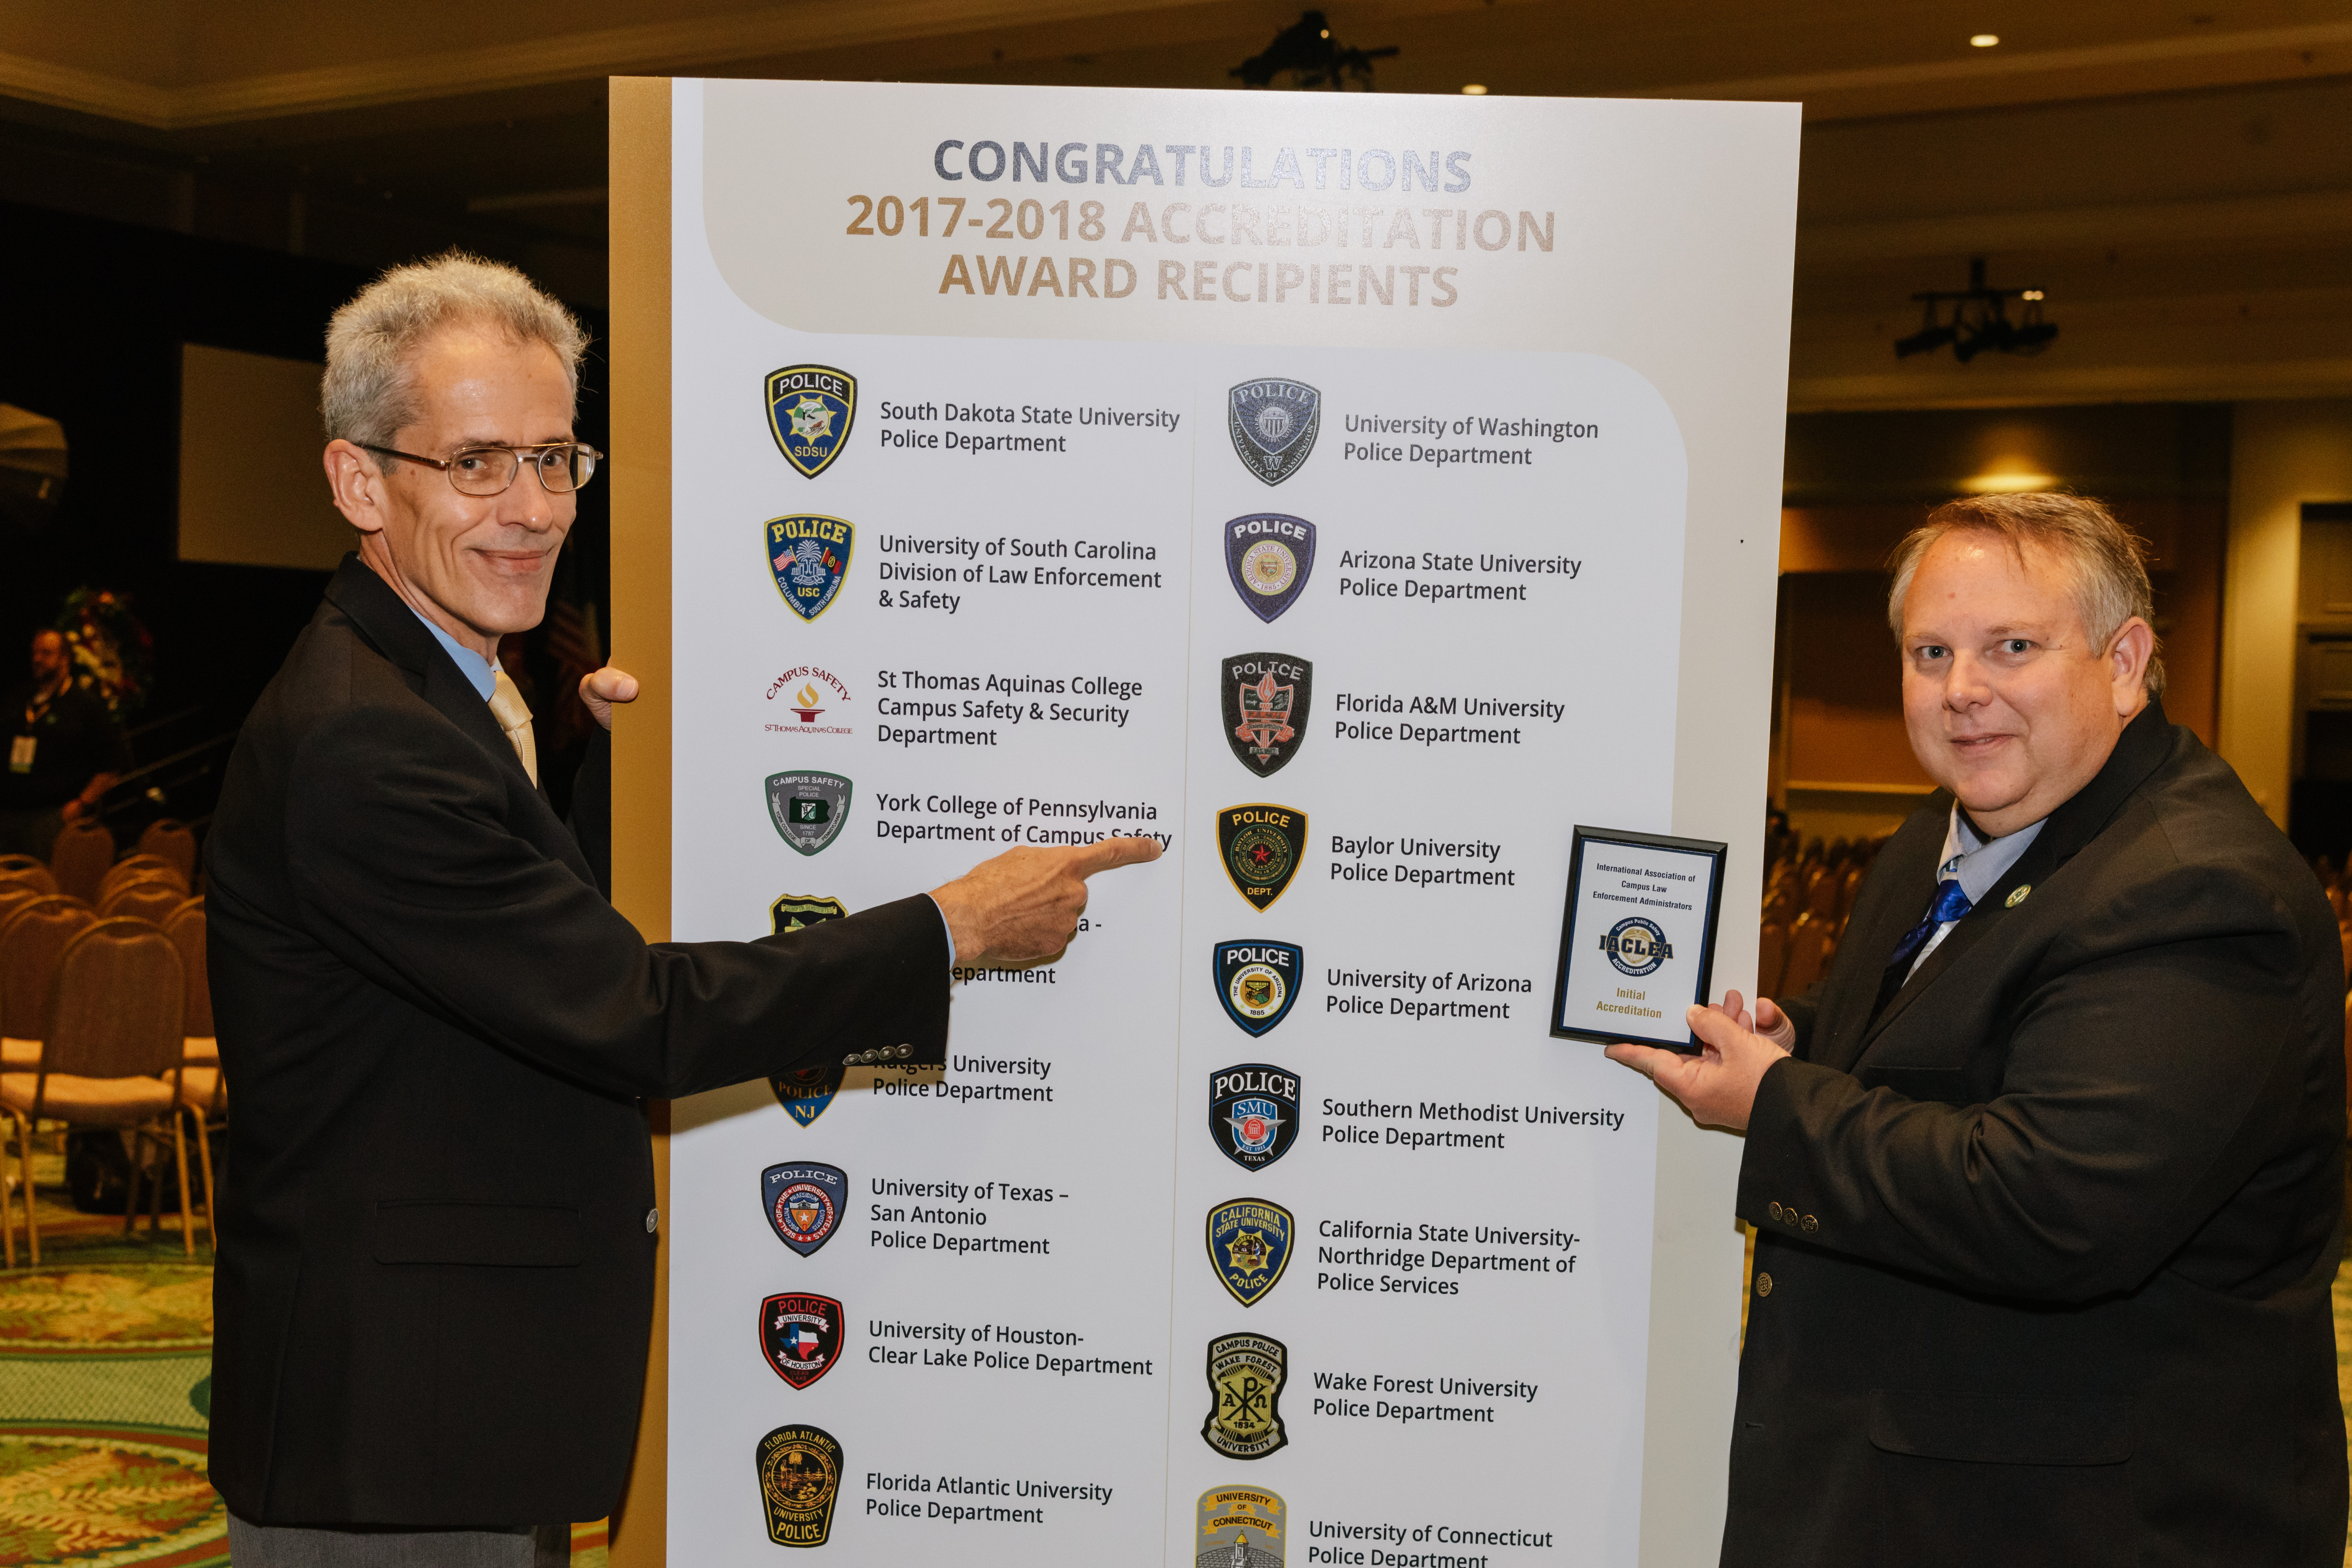 Baylor University Chief of Police Brad Wigtil and Accreditation Manager Sgt. Andrew Huntington point out their achievement following the Awards Ceremony at the 2018 Annual Conference & Exposition. © Mike Ritter